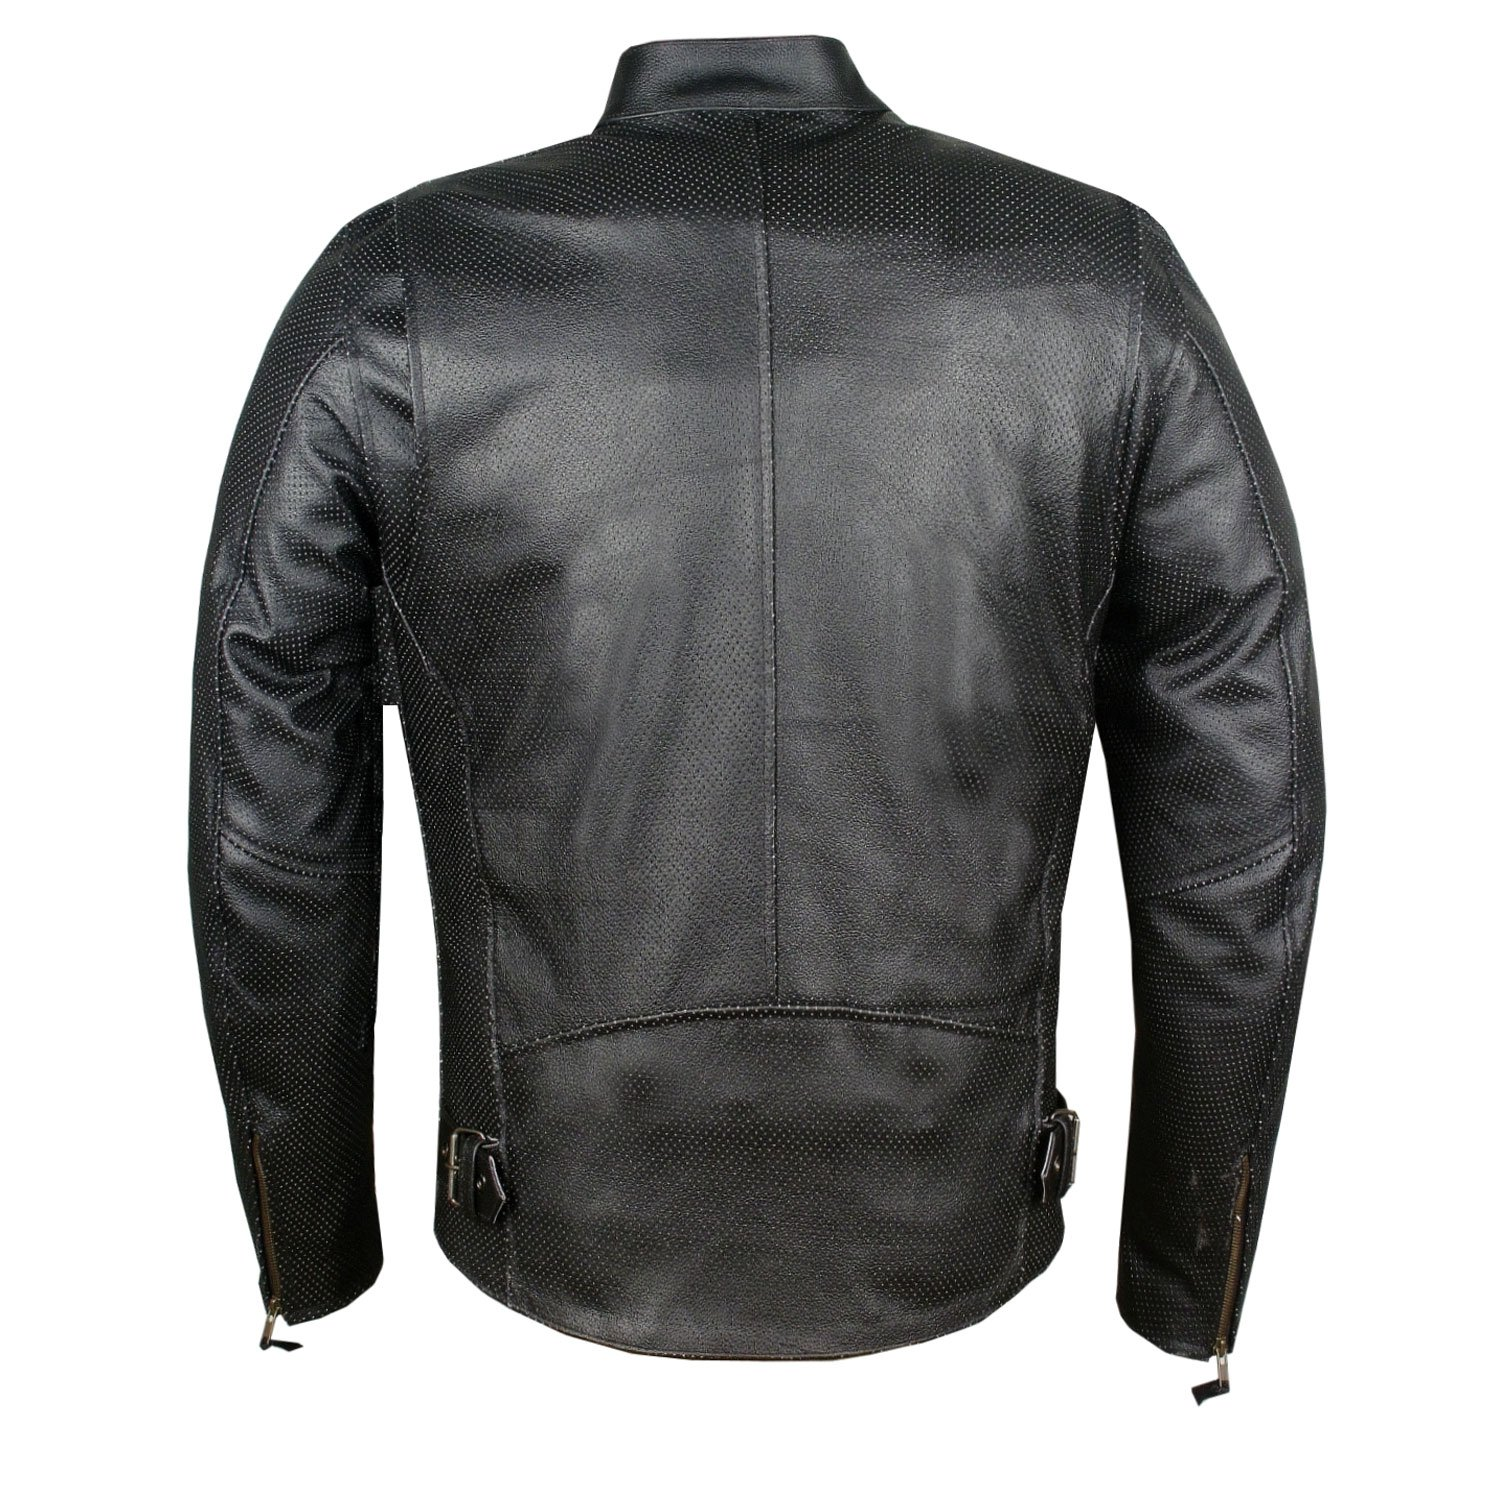 Mens Infinity Airflow Perforated Leather Motorcycle Armor Biker Jacket S